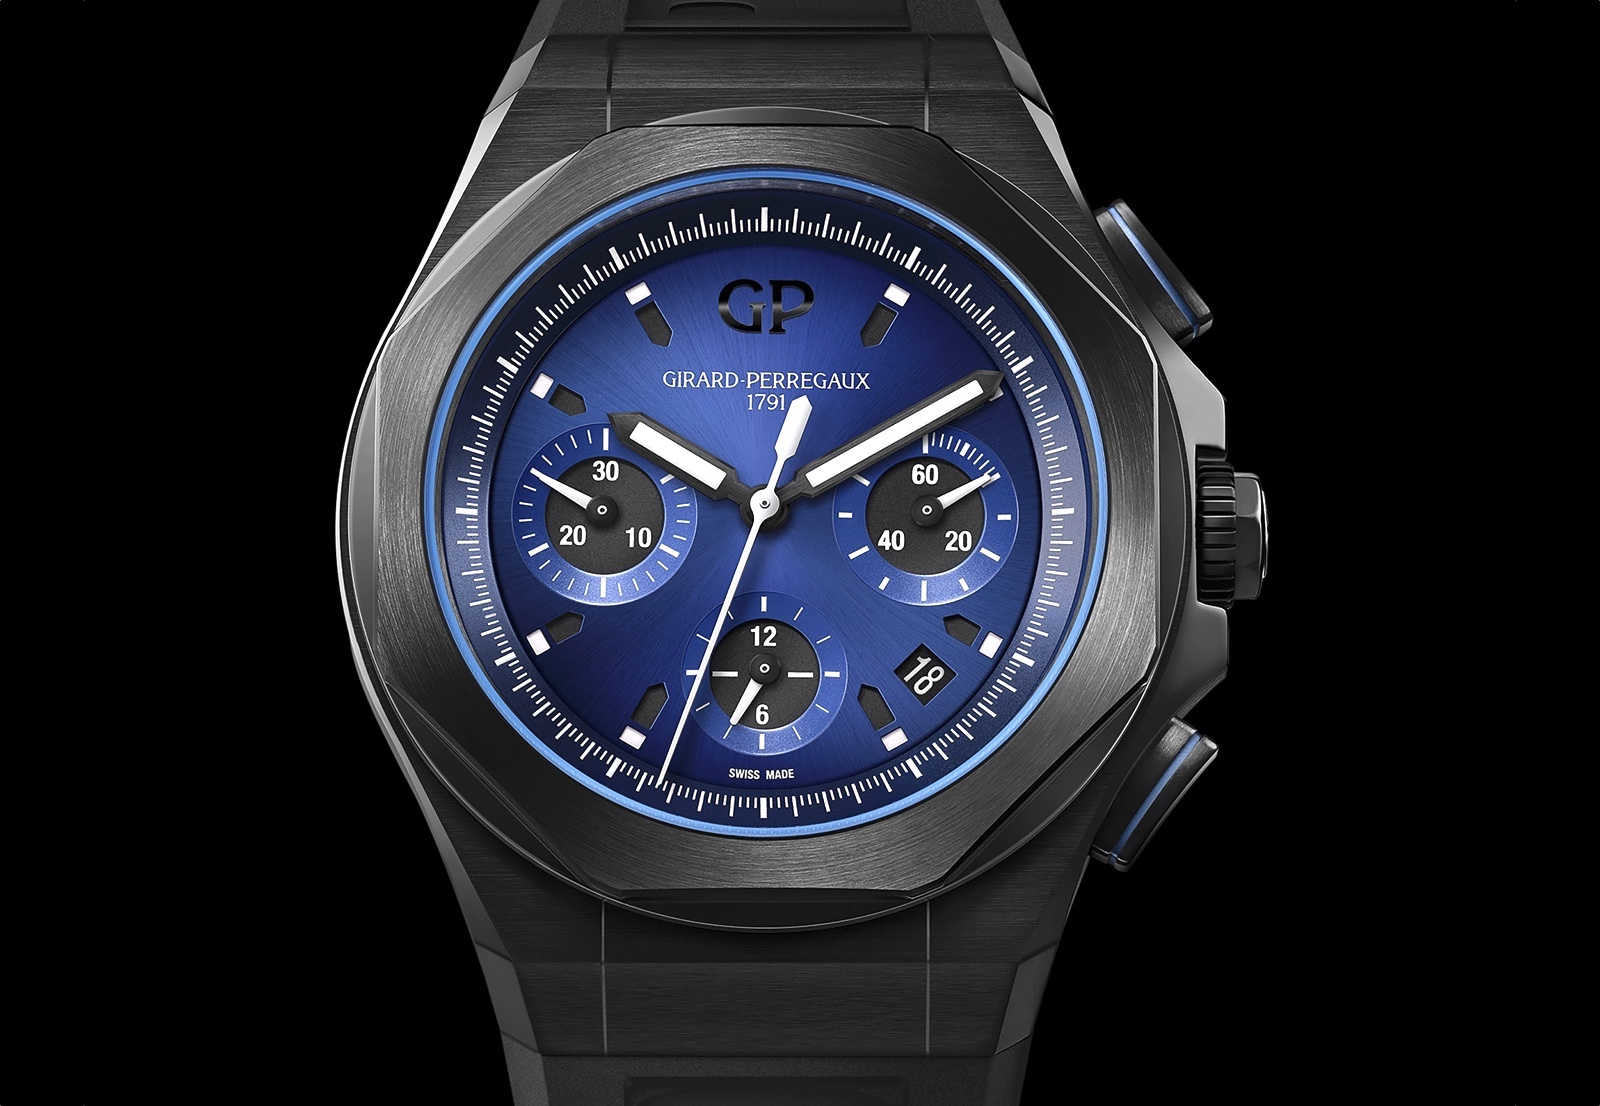 Girard-Perregaux Laureato Absolute Chronograph Front